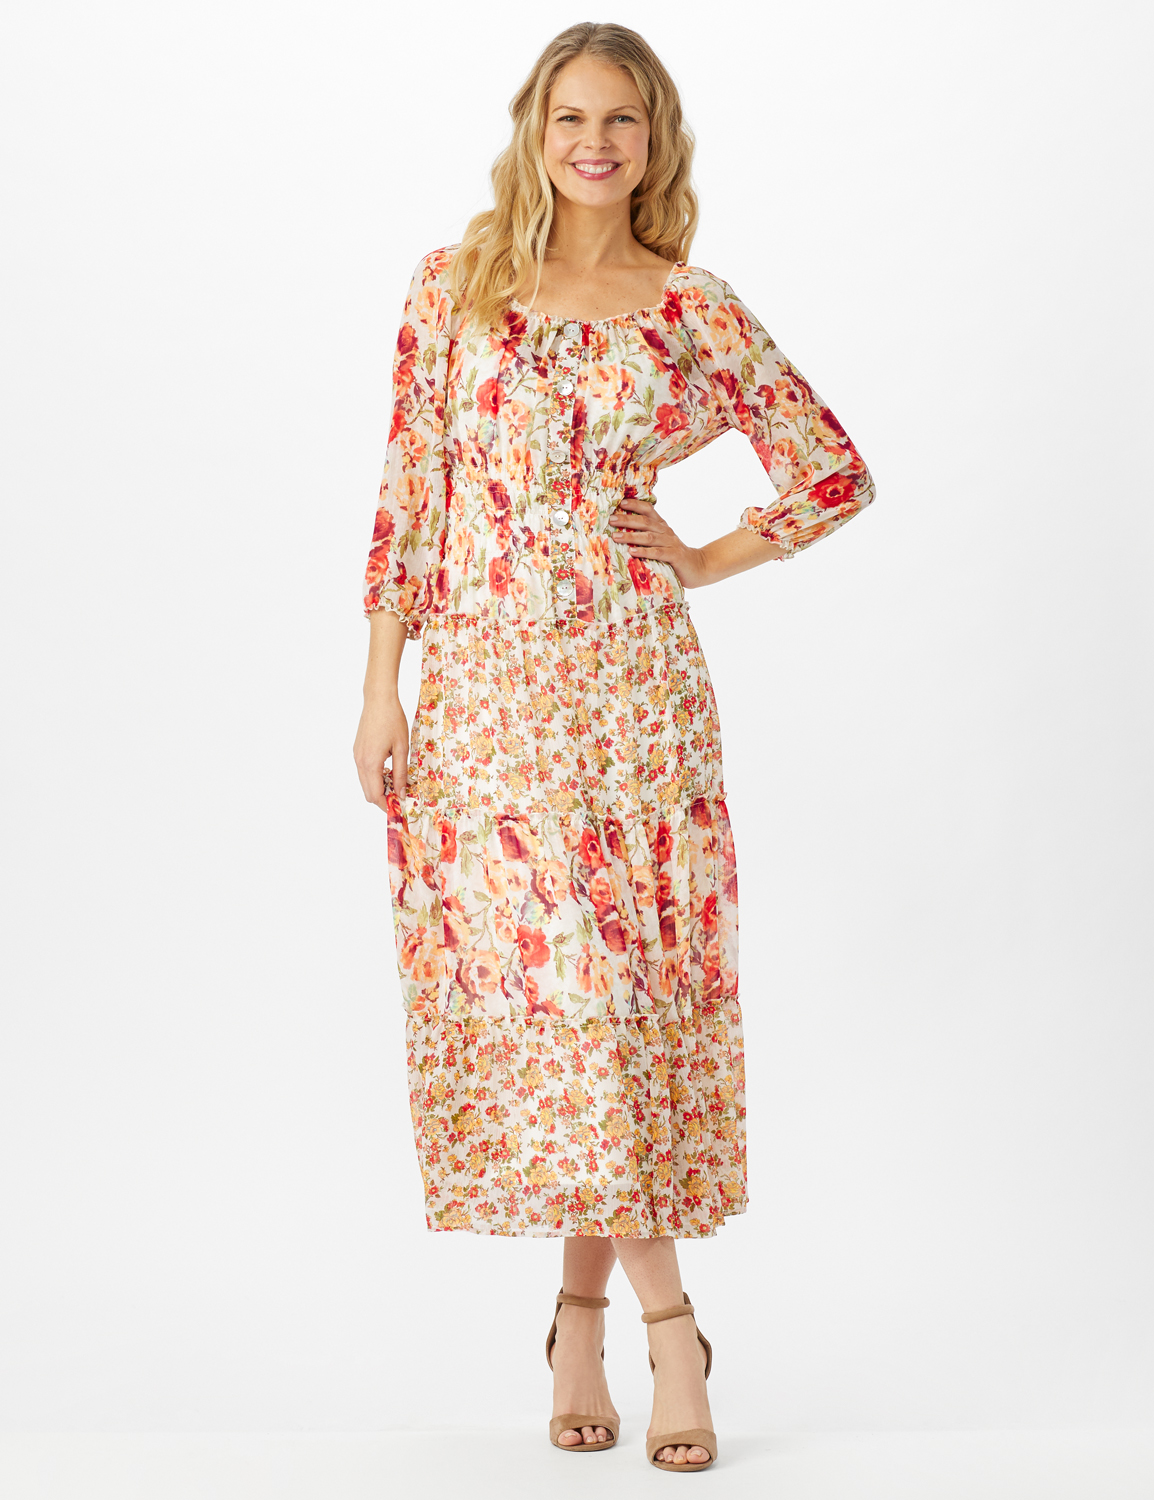 Mixed Ditsy Print Tiered Maxi Peasant Dress -Ivory/Orange - Front